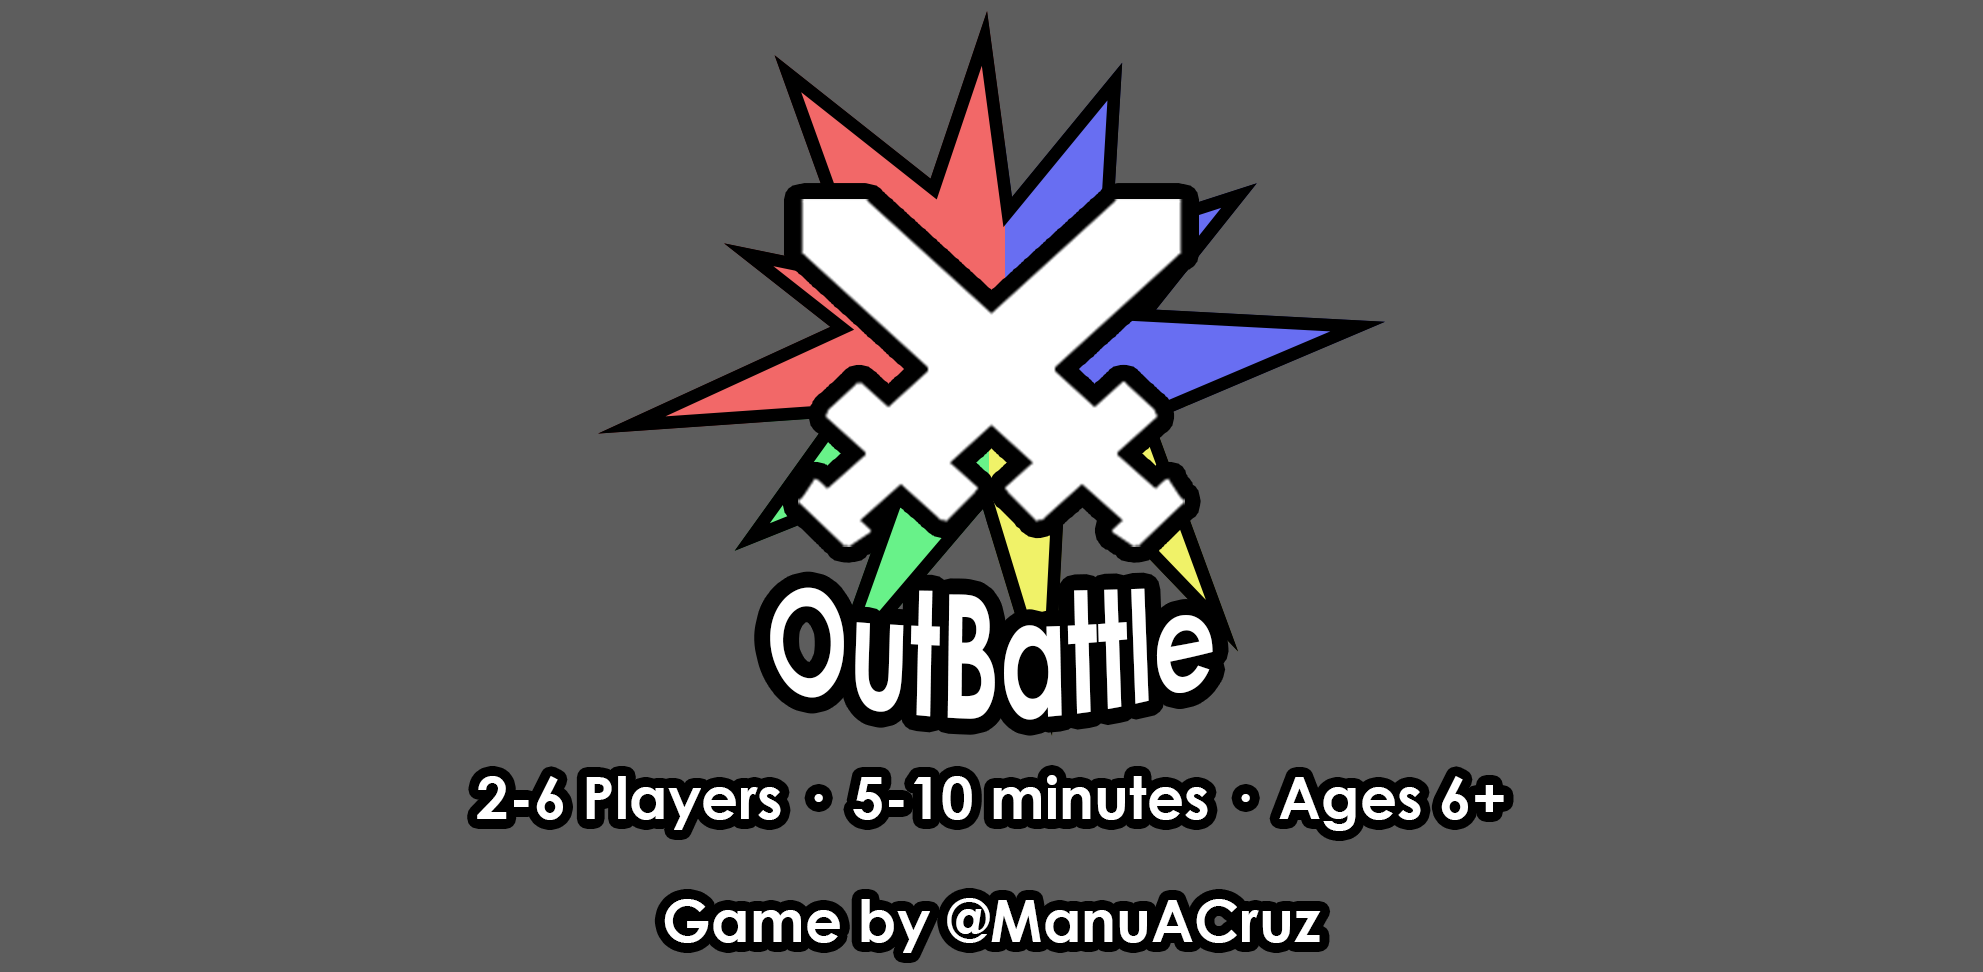 OutBattle